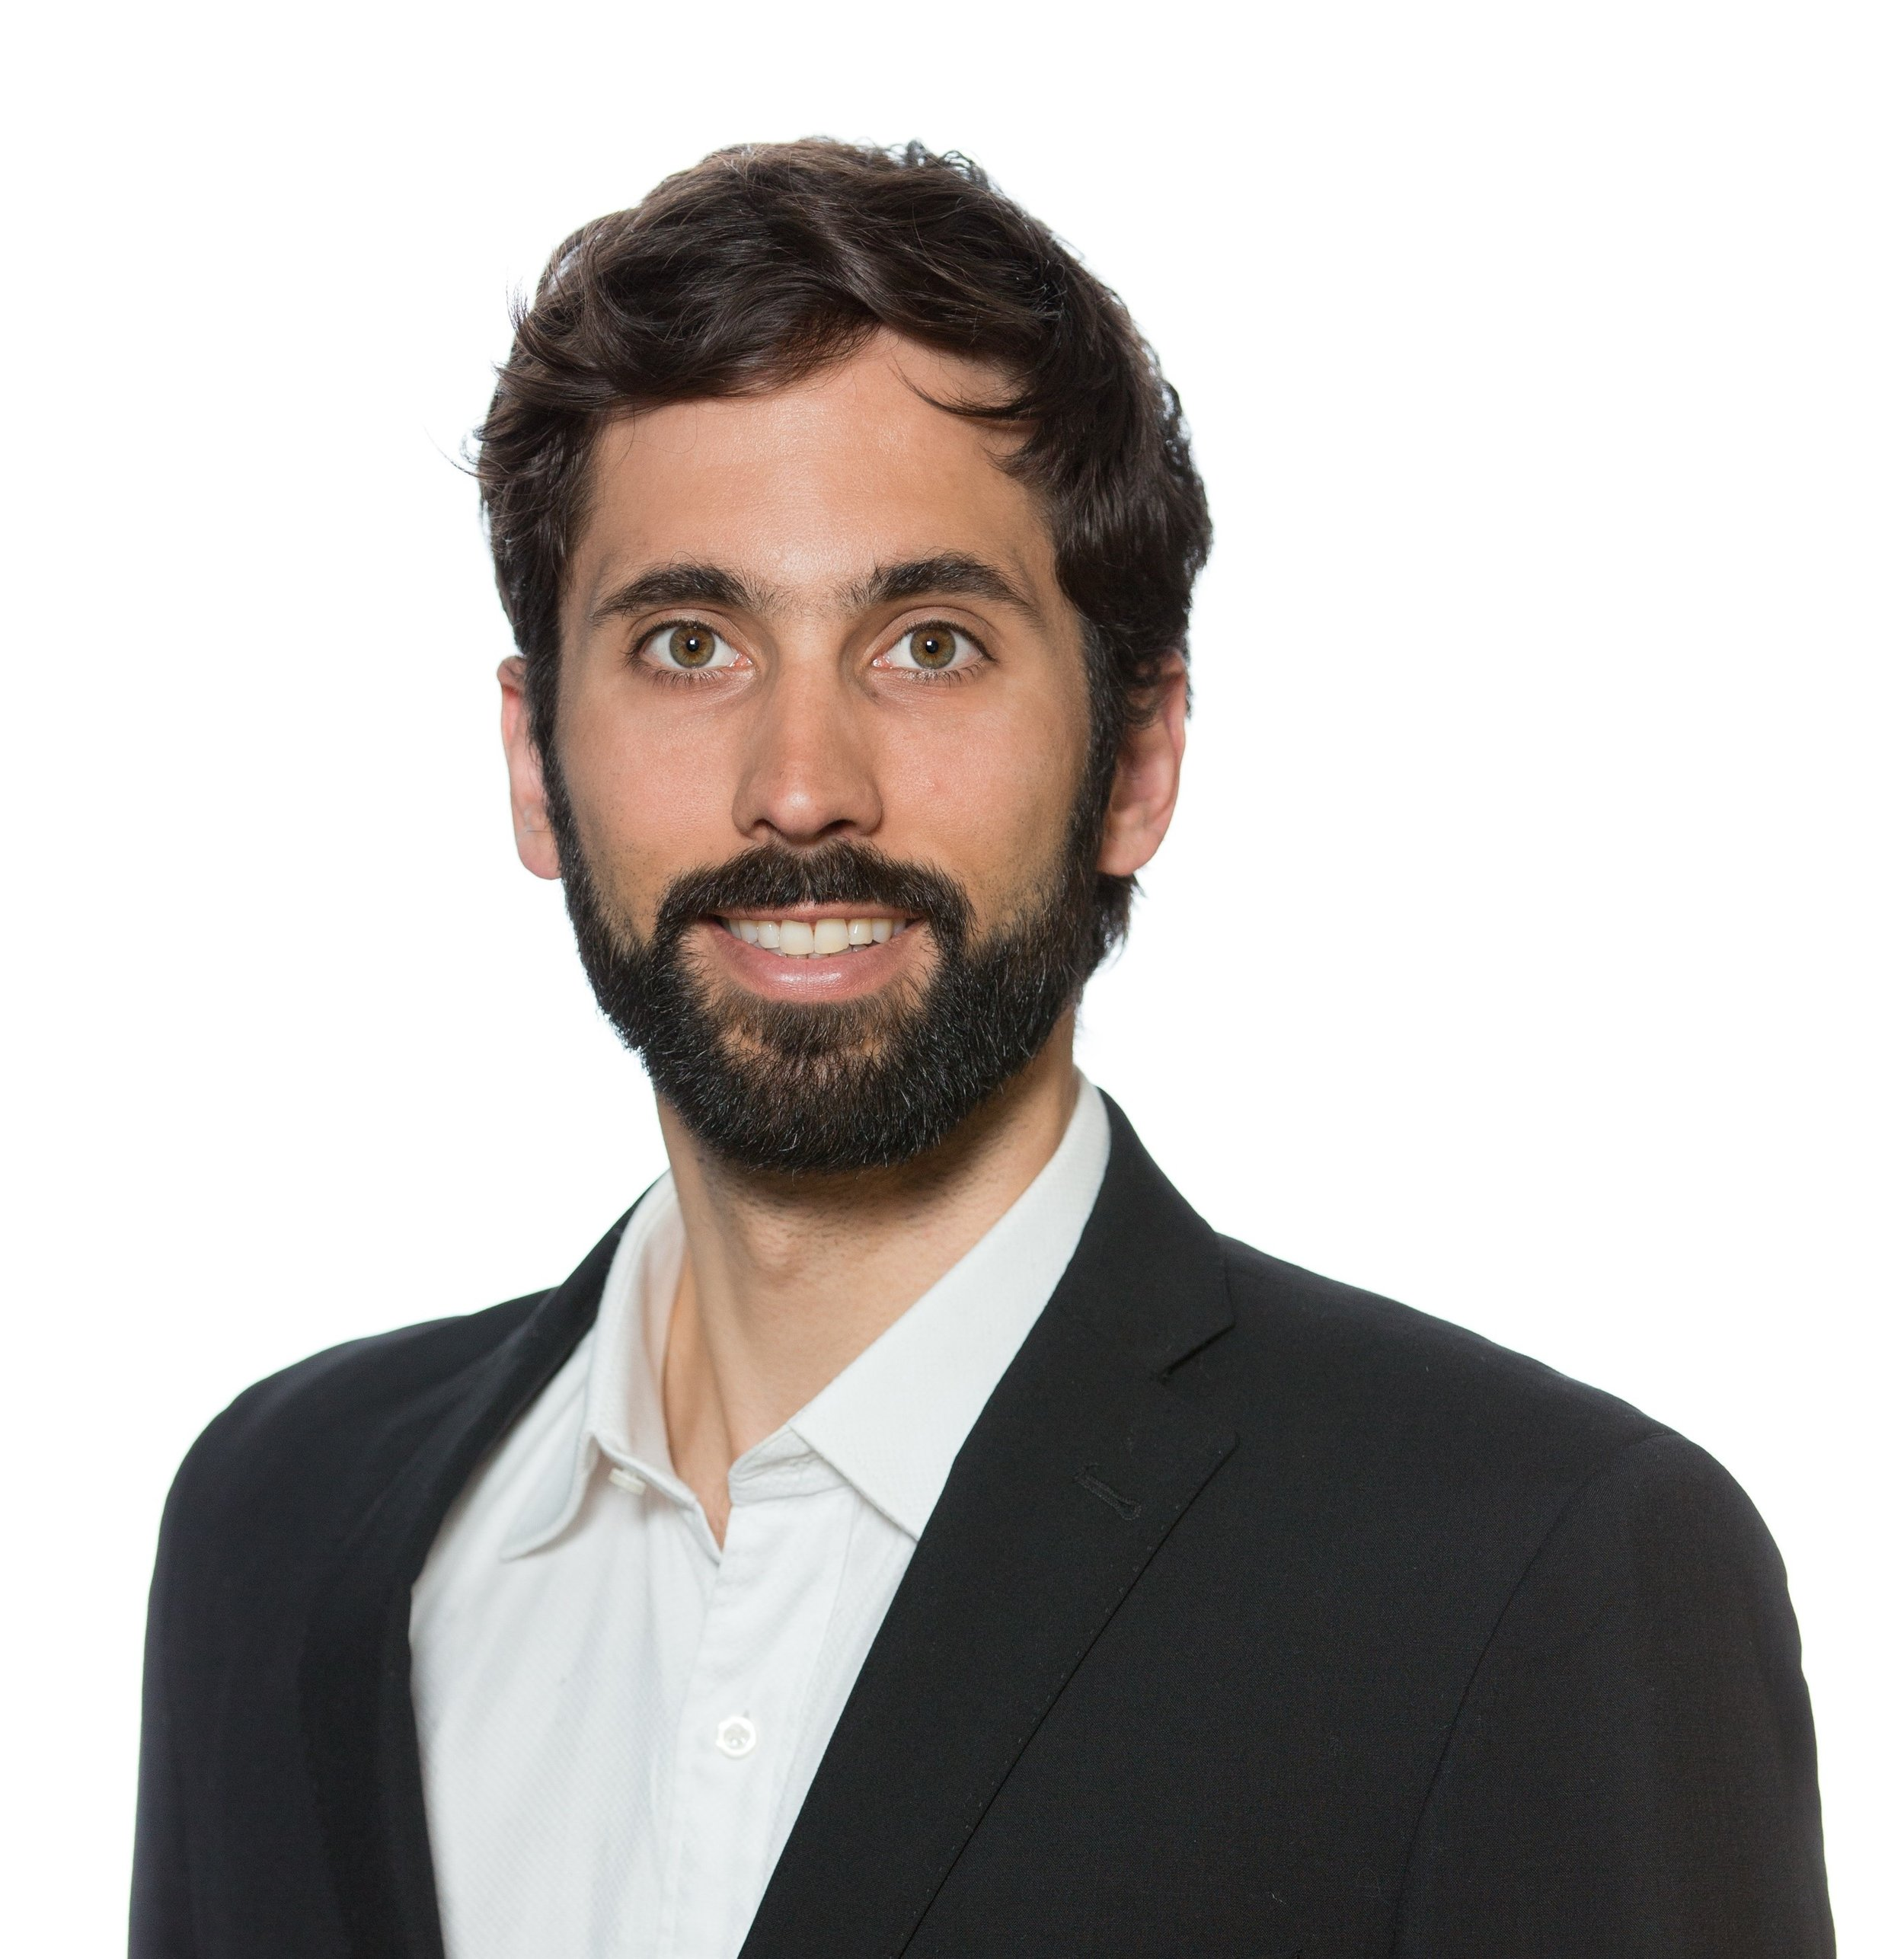 MIGUEL TAVARES - STRUCTURAL ENGINEER